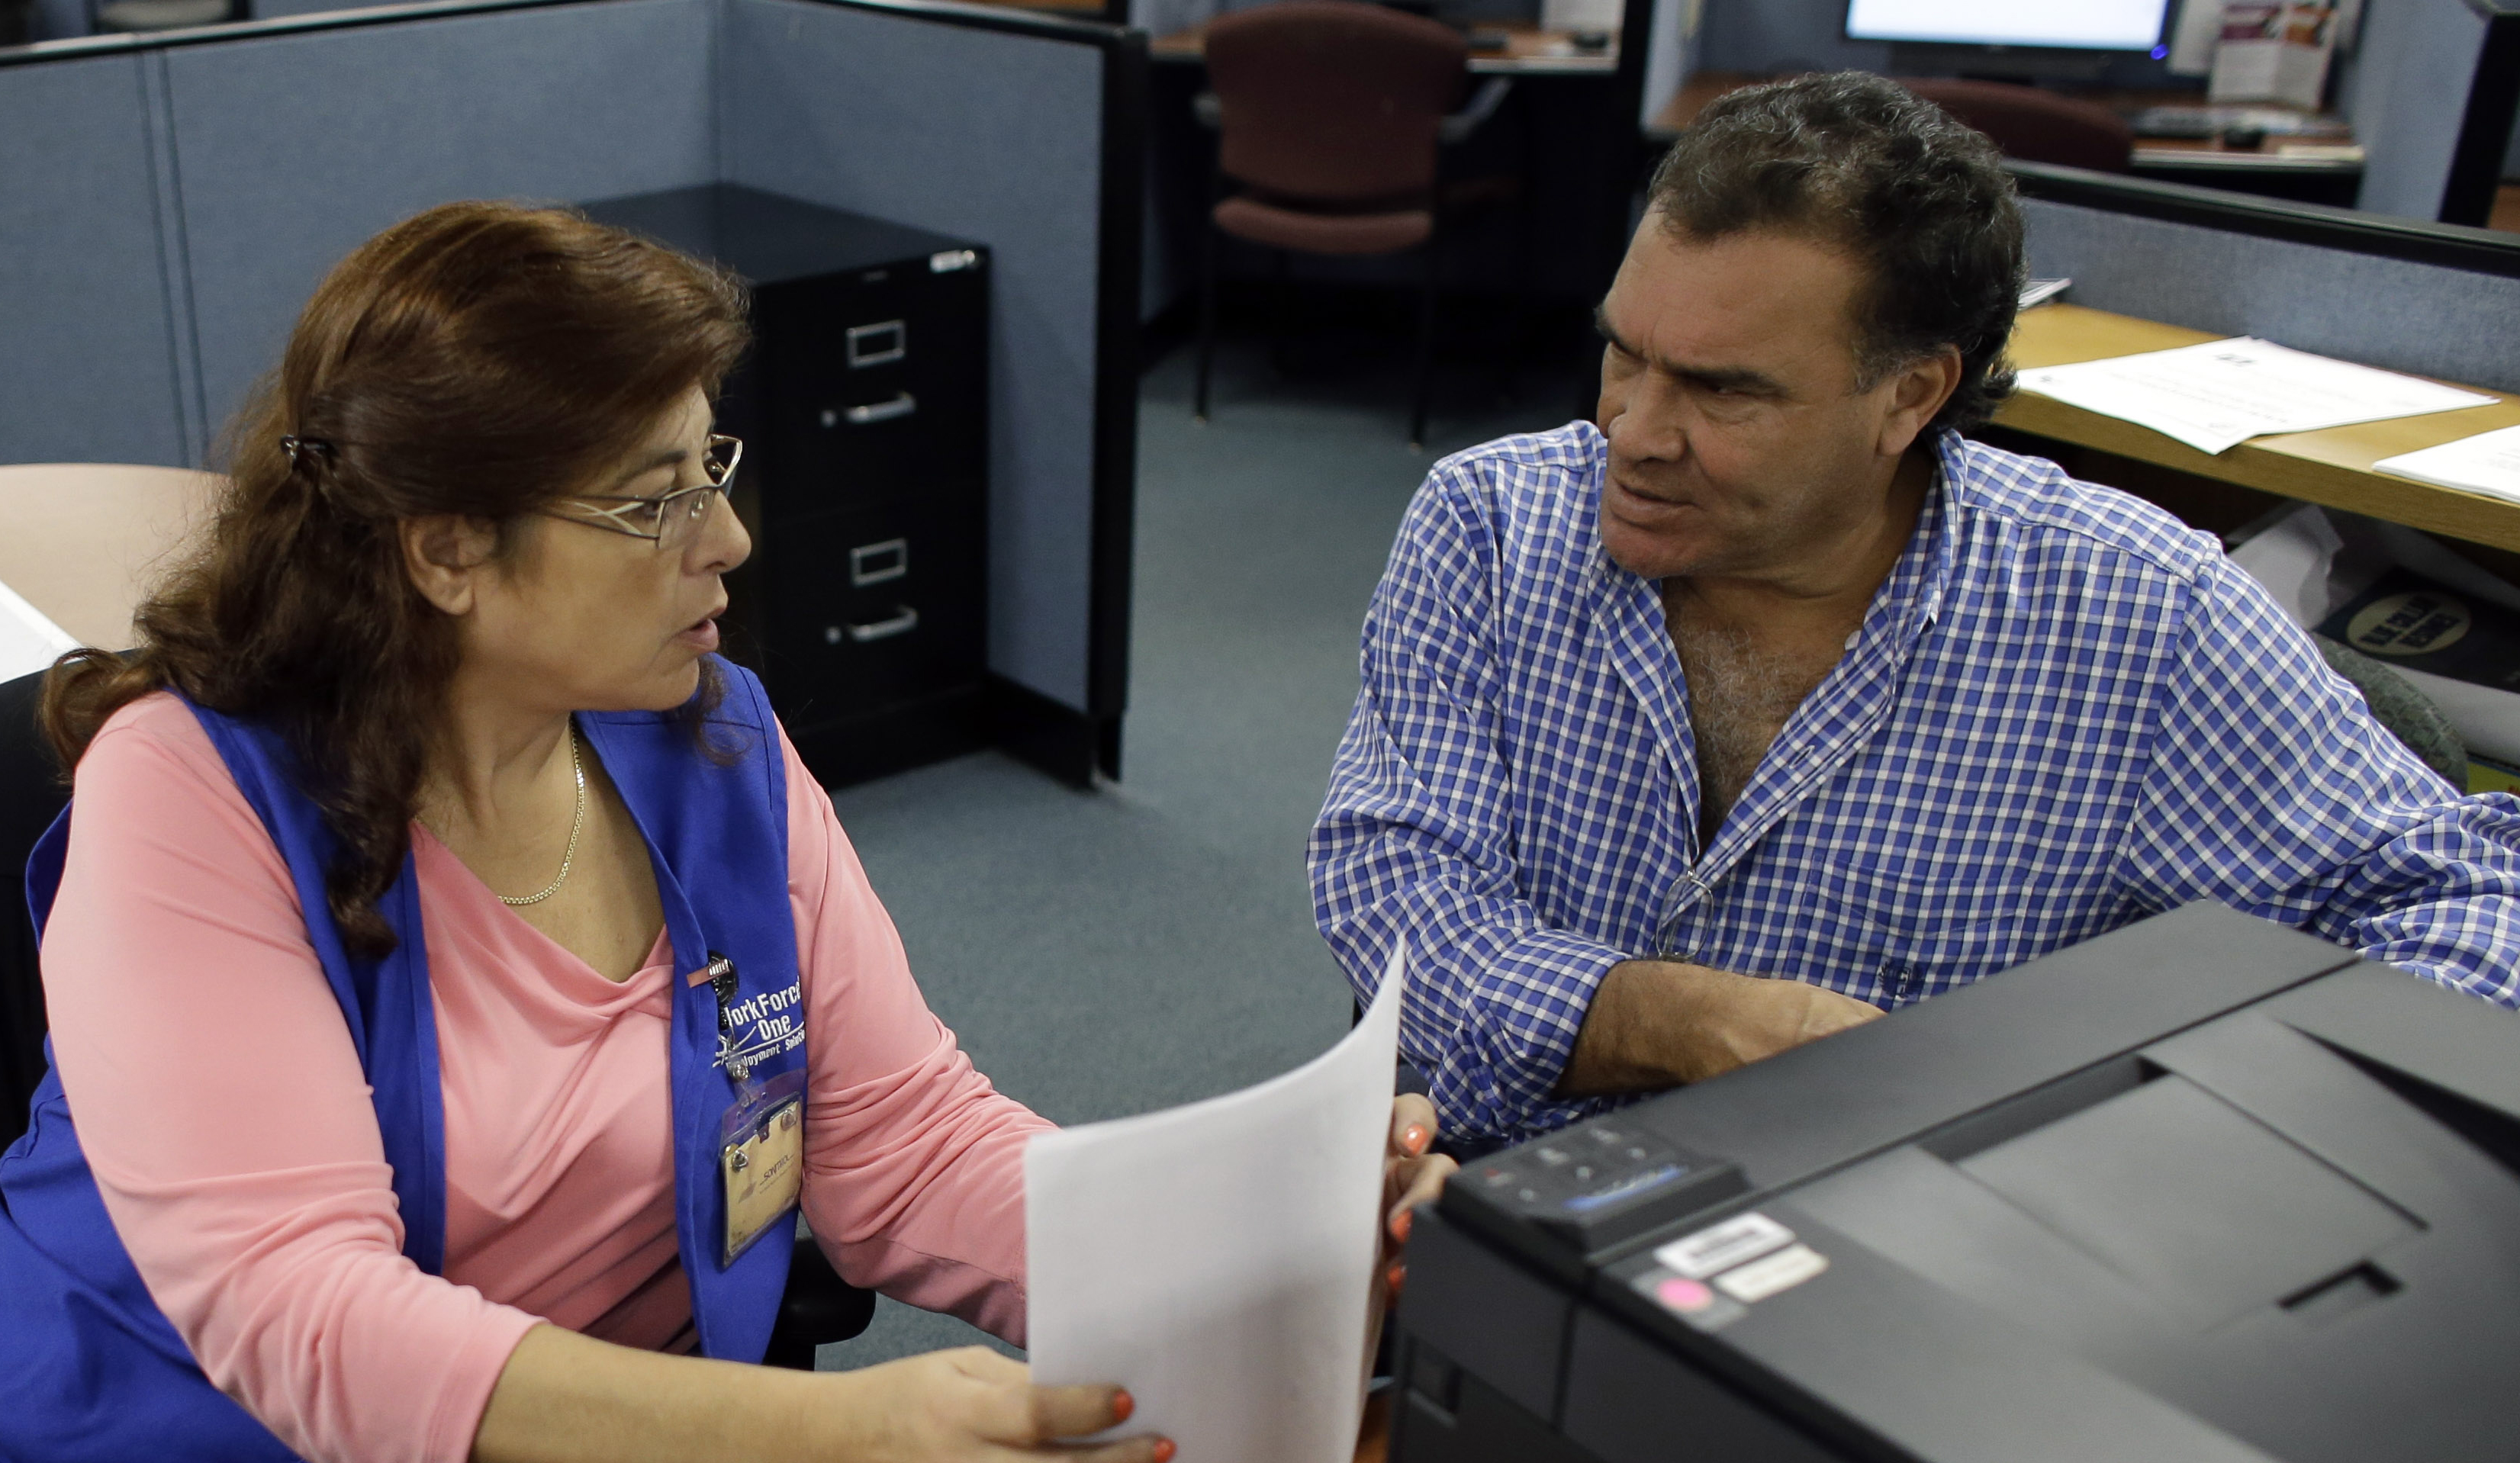 Rose Capote-Marcus, left, helps Waldemar Vega with problems he is having receiving his unemployment benefits at WorkForce One in Davie, Florida.